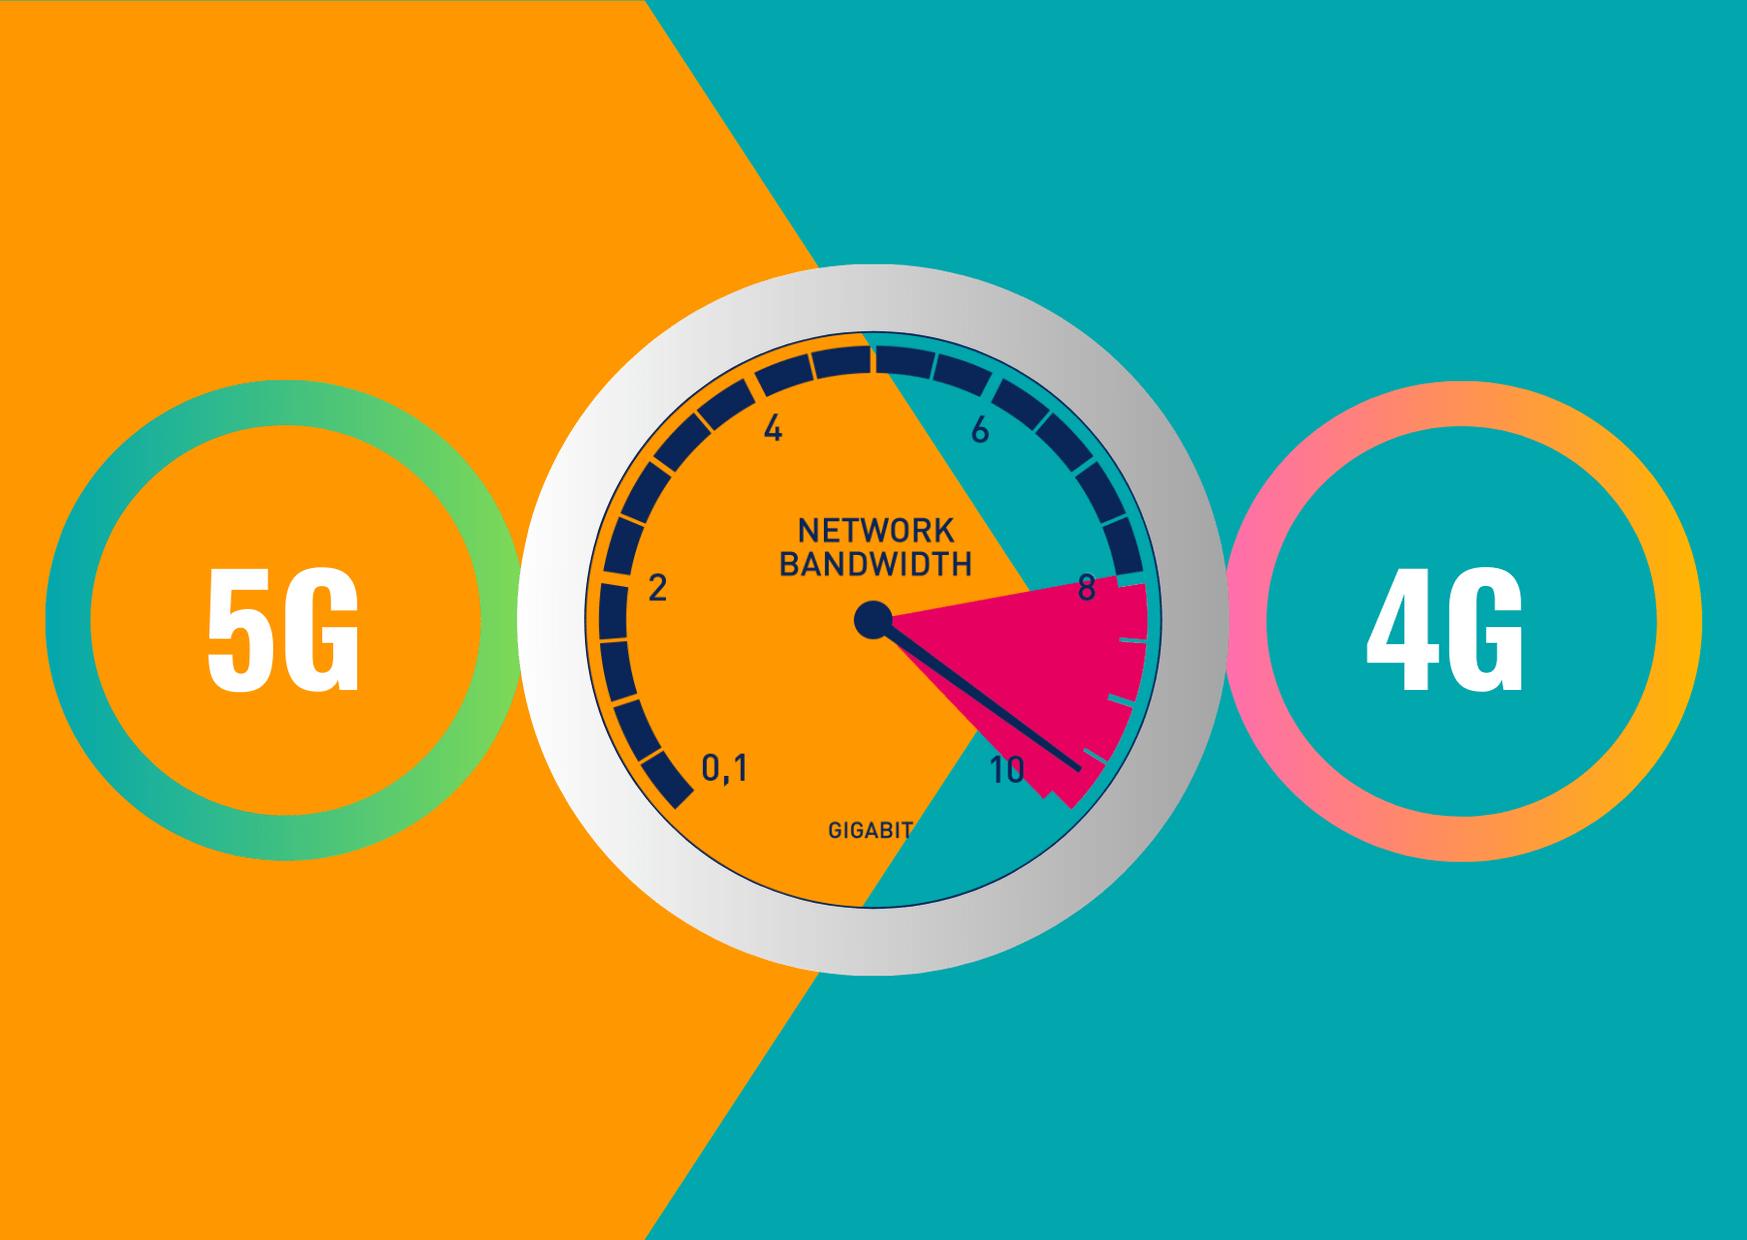 5G Vs 4G The Performance Differences